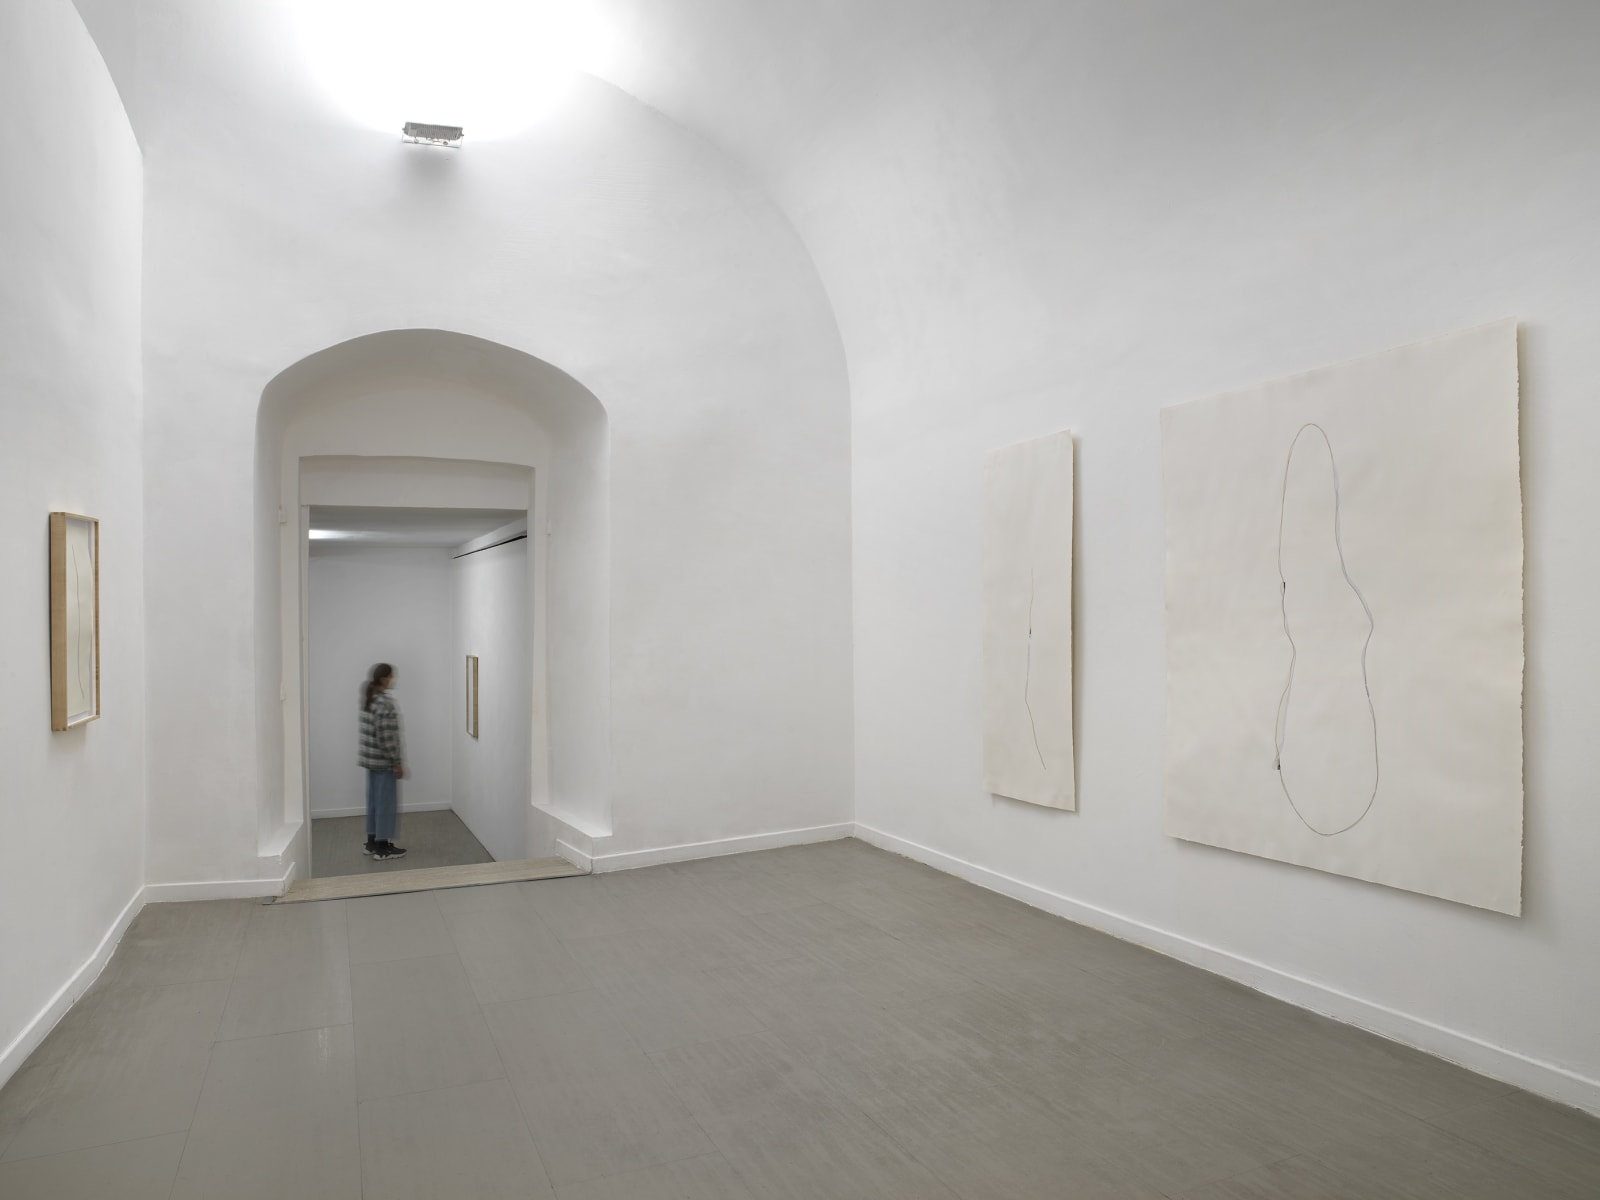 Beatrice Pediconi Nude curated by Cecilia Canziani installation view of the first and second room ph. Dario Lasagni